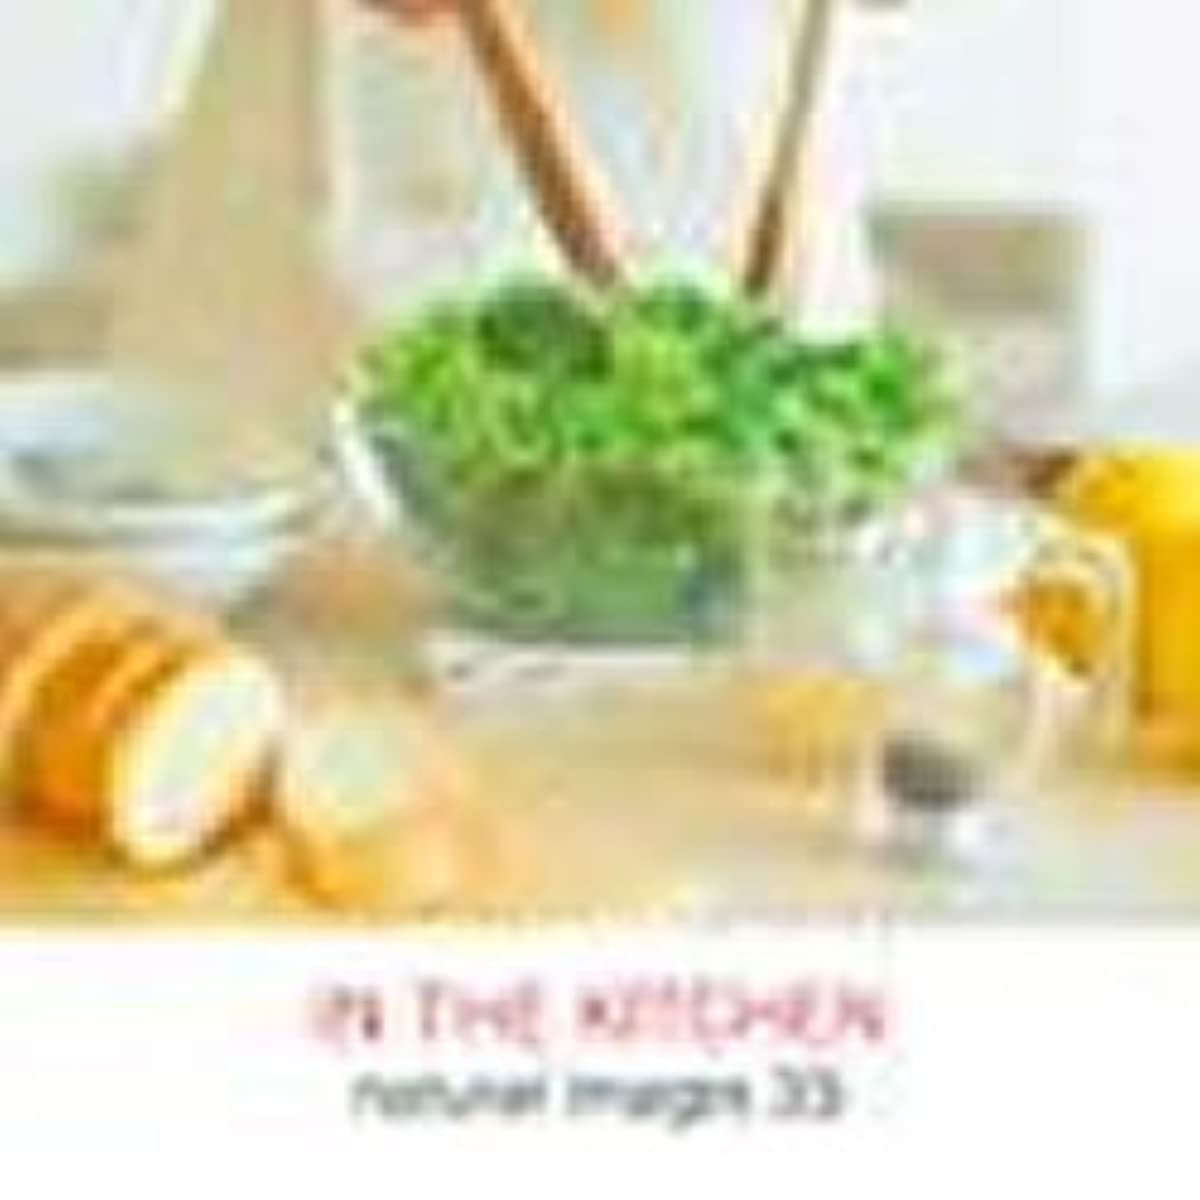 natural images Vol.33 IN THE KITCHEN